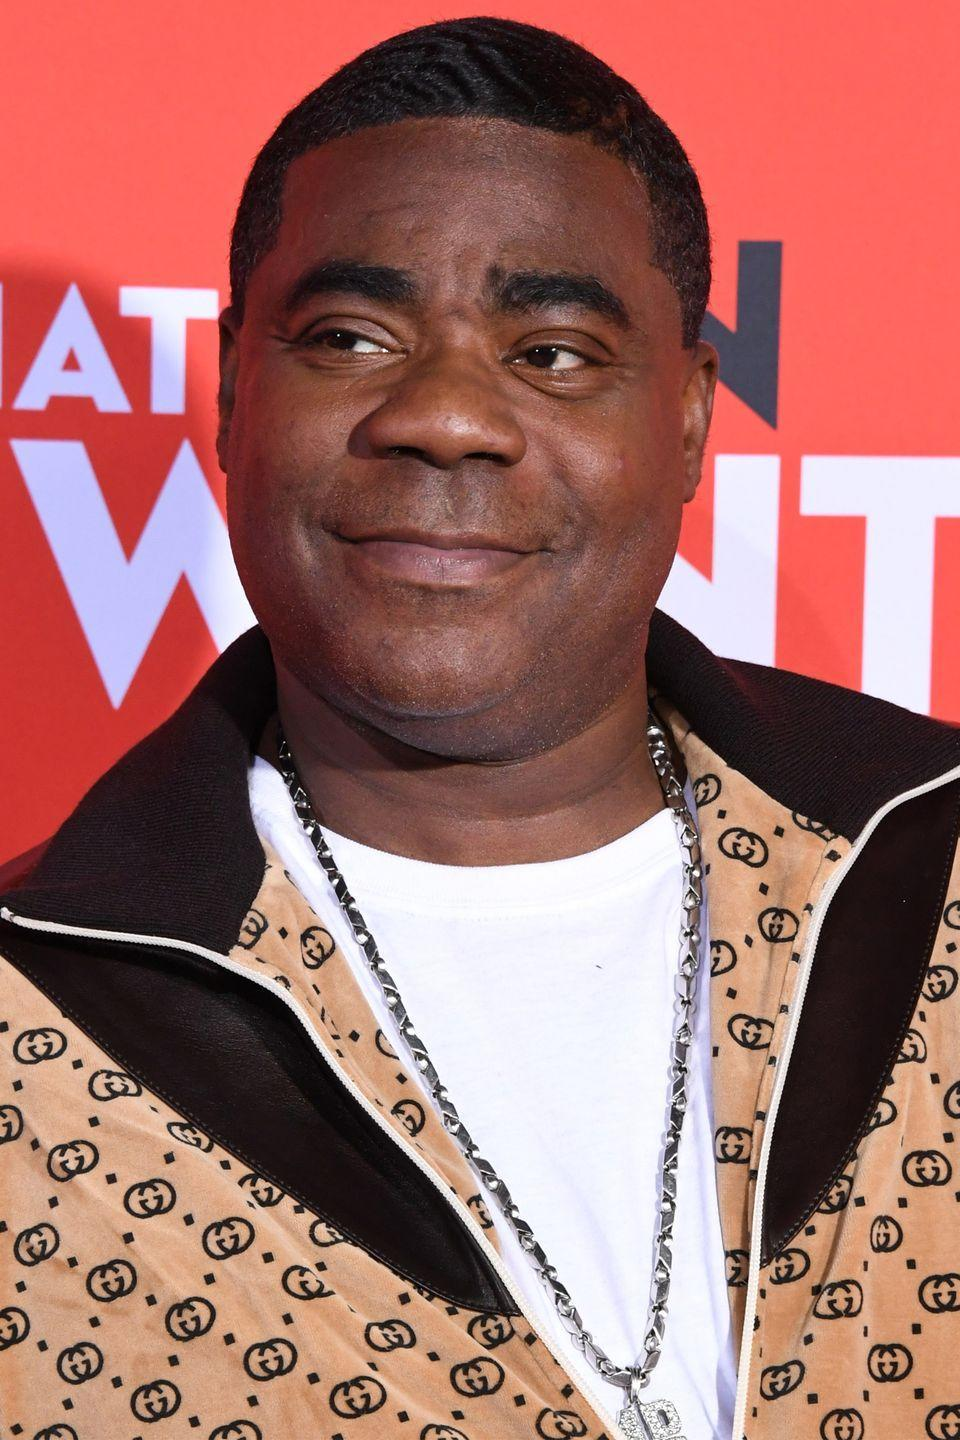 """<p>Morgan dropped out of high school to pursue his career, and he <a href=""""https://www.huffingtonpost.com/2010/04/11/tracy-morgan-im-glad-i-dr_n_533179.html"""" rel=""""nofollow noopener"""" target=""""_blank"""" data-ylk=""""slk:says"""" class=""""link rapid-noclick-resp"""">says</a> he's very happy he made the decision to do so.</p><p>""""I'm glad I dropped out of high school, man. I wouldn't be where I'm at. I would have had a net. I'm glad I didn't have anything to fall back on, man, because that made me go for my dreams that much harder.""""</p>"""